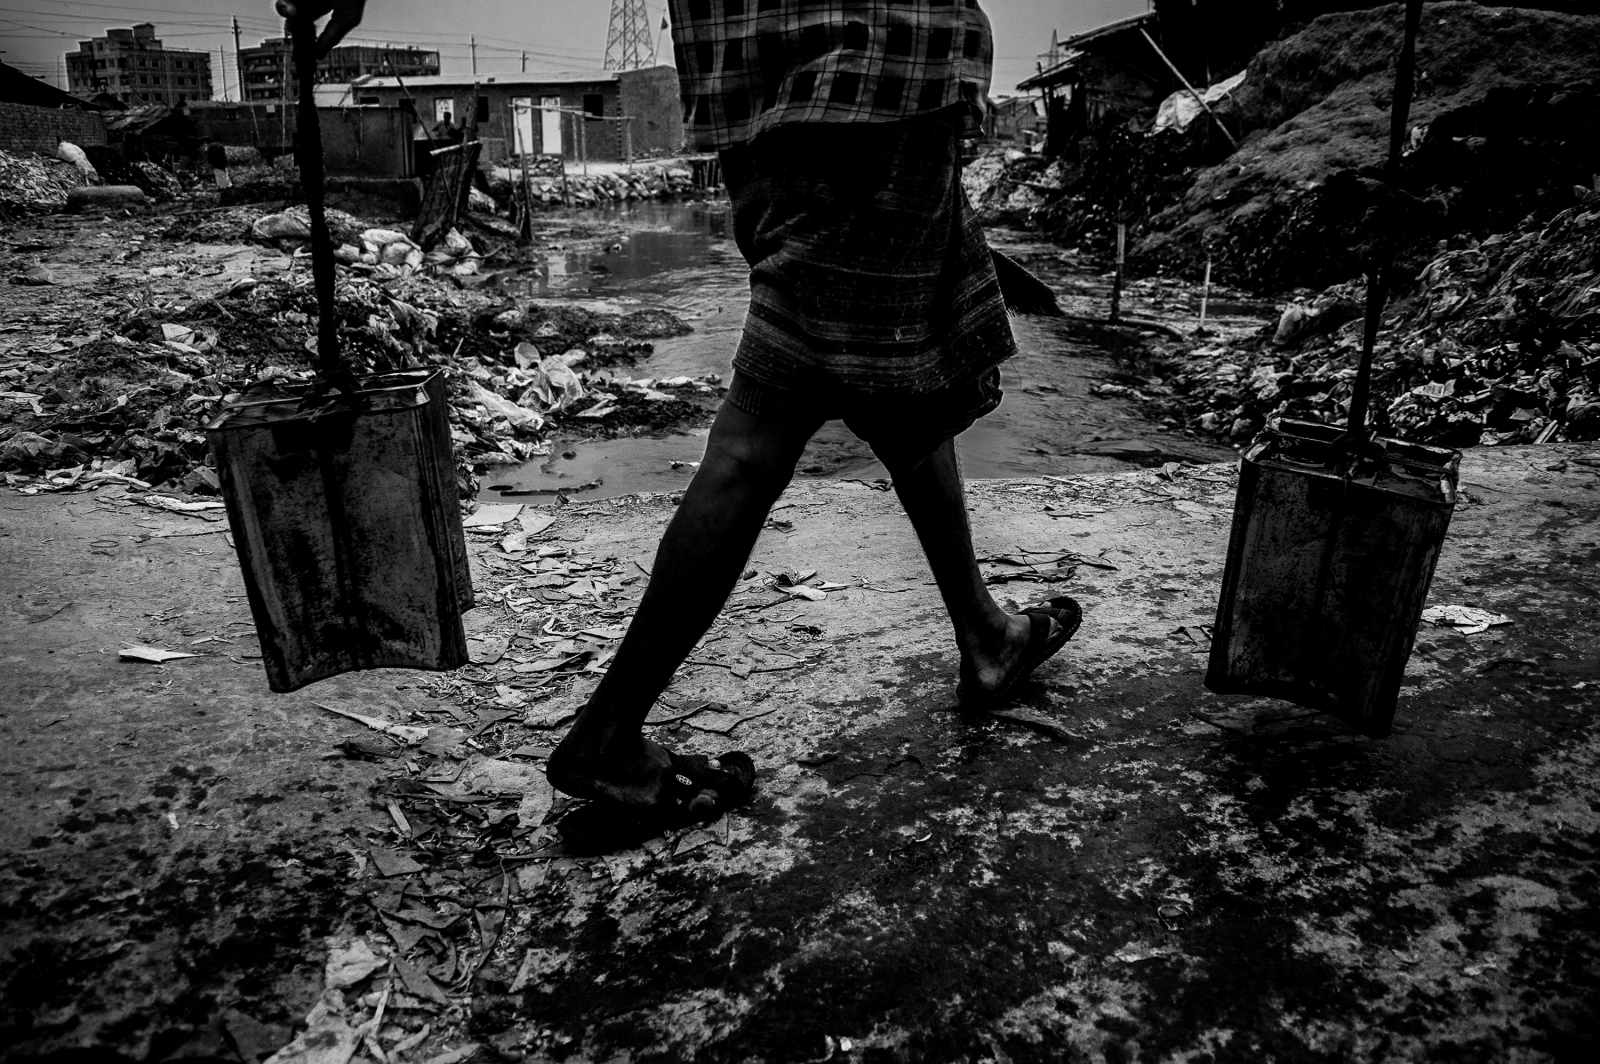 Art and Documentary Photography - Loading DSC_7114.jpg